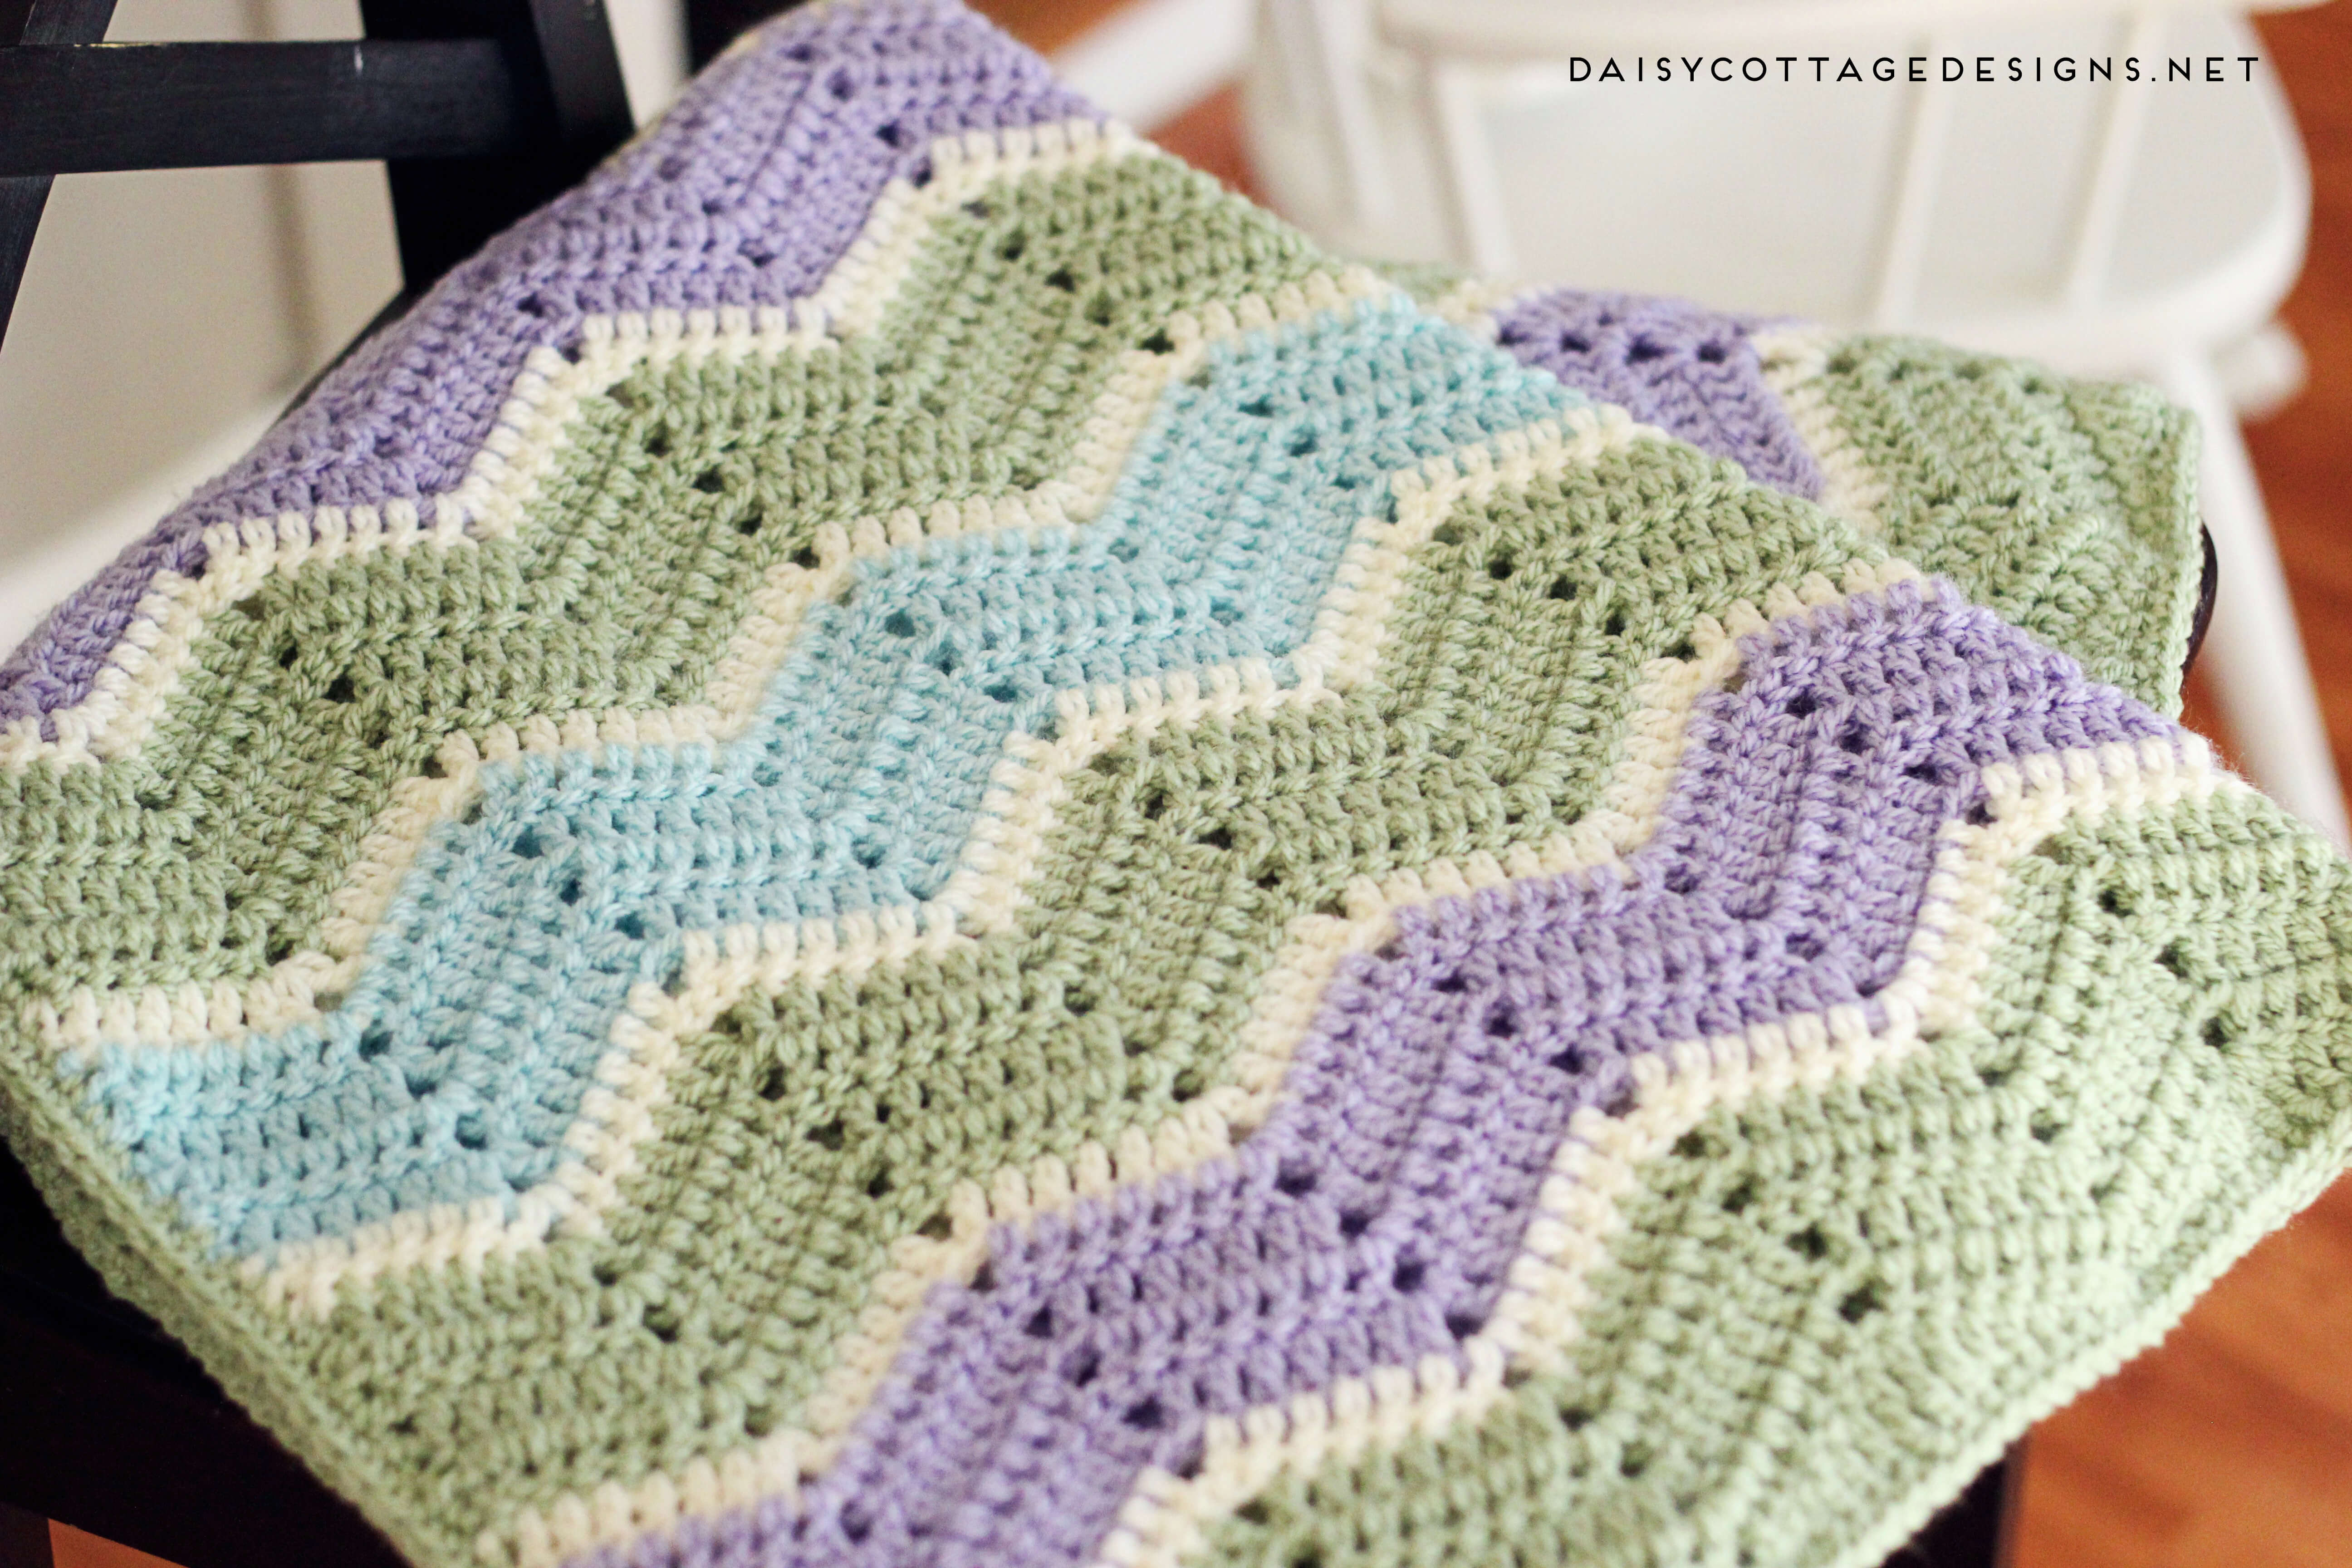 Free Crochet Afghan Patterns Inspirational Ripple Blanket Crochet Pattern Daisy Cottage Designs Of Fresh 44 Models Free Crochet Afghan Patterns